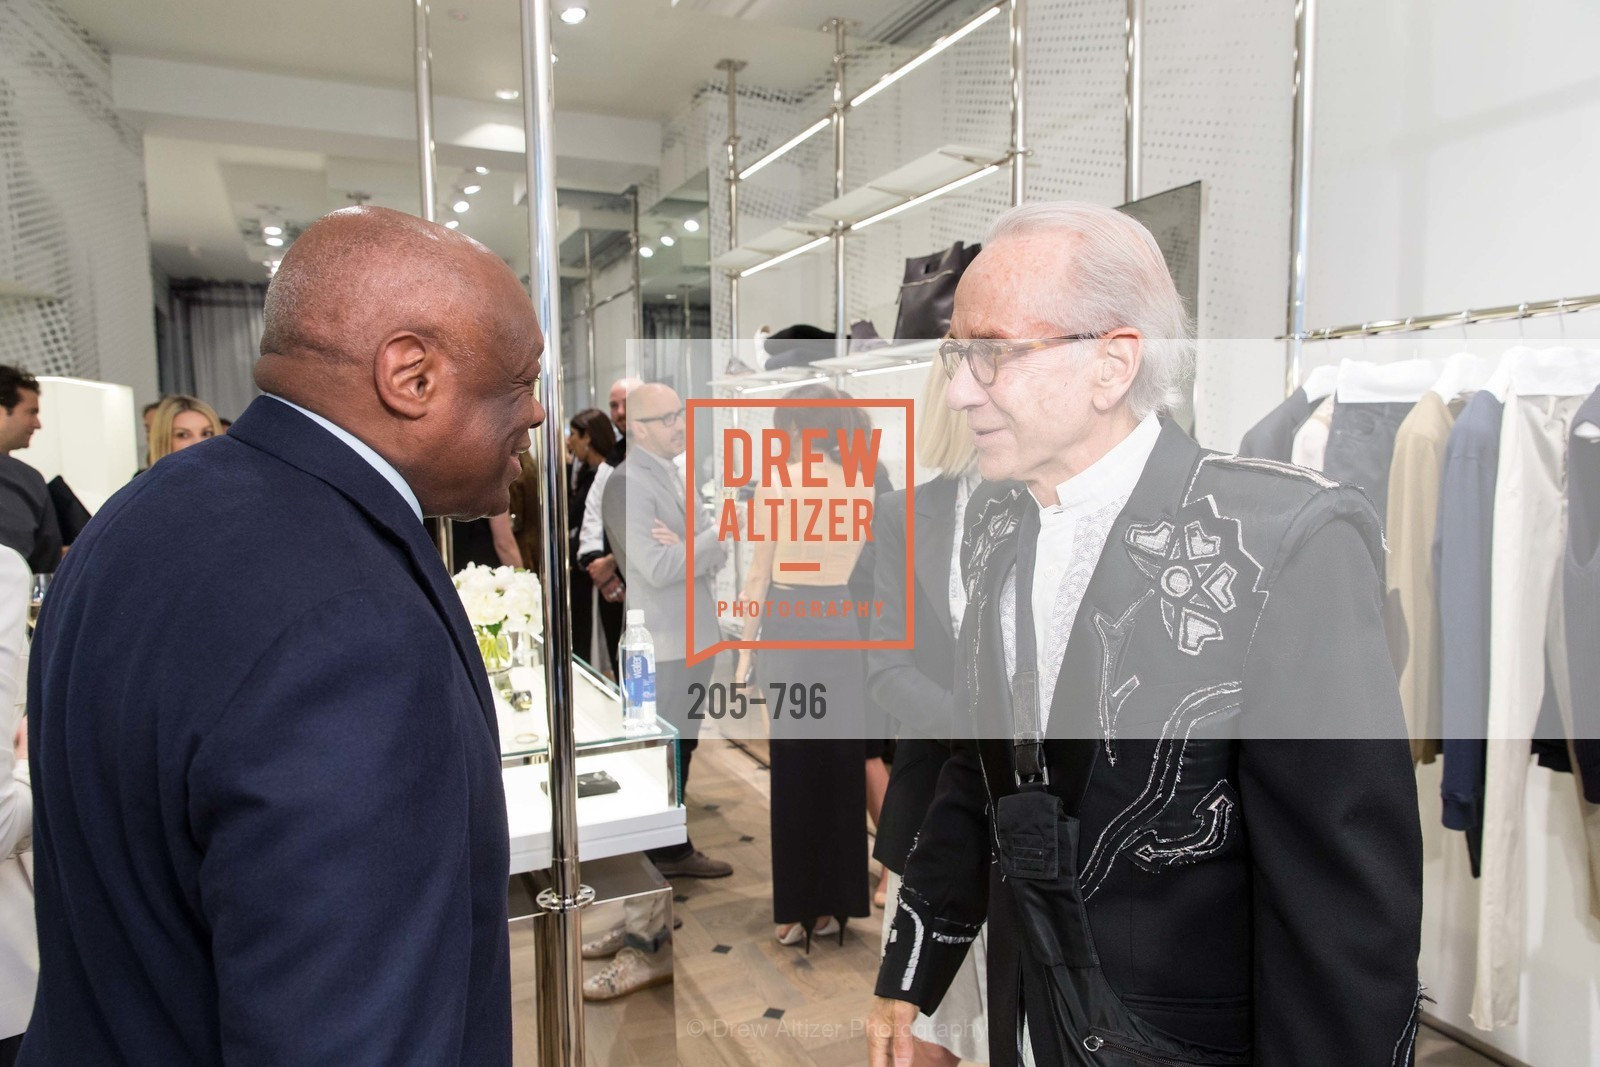 Willie Brown, Norman Stone, MAISON MARGIELA San Francisco Boutique Grand Opening Event, US, April 24th, 2015,Drew Altizer, Drew Altizer Photography, full-service agency, private events, San Francisco photographer, photographer california